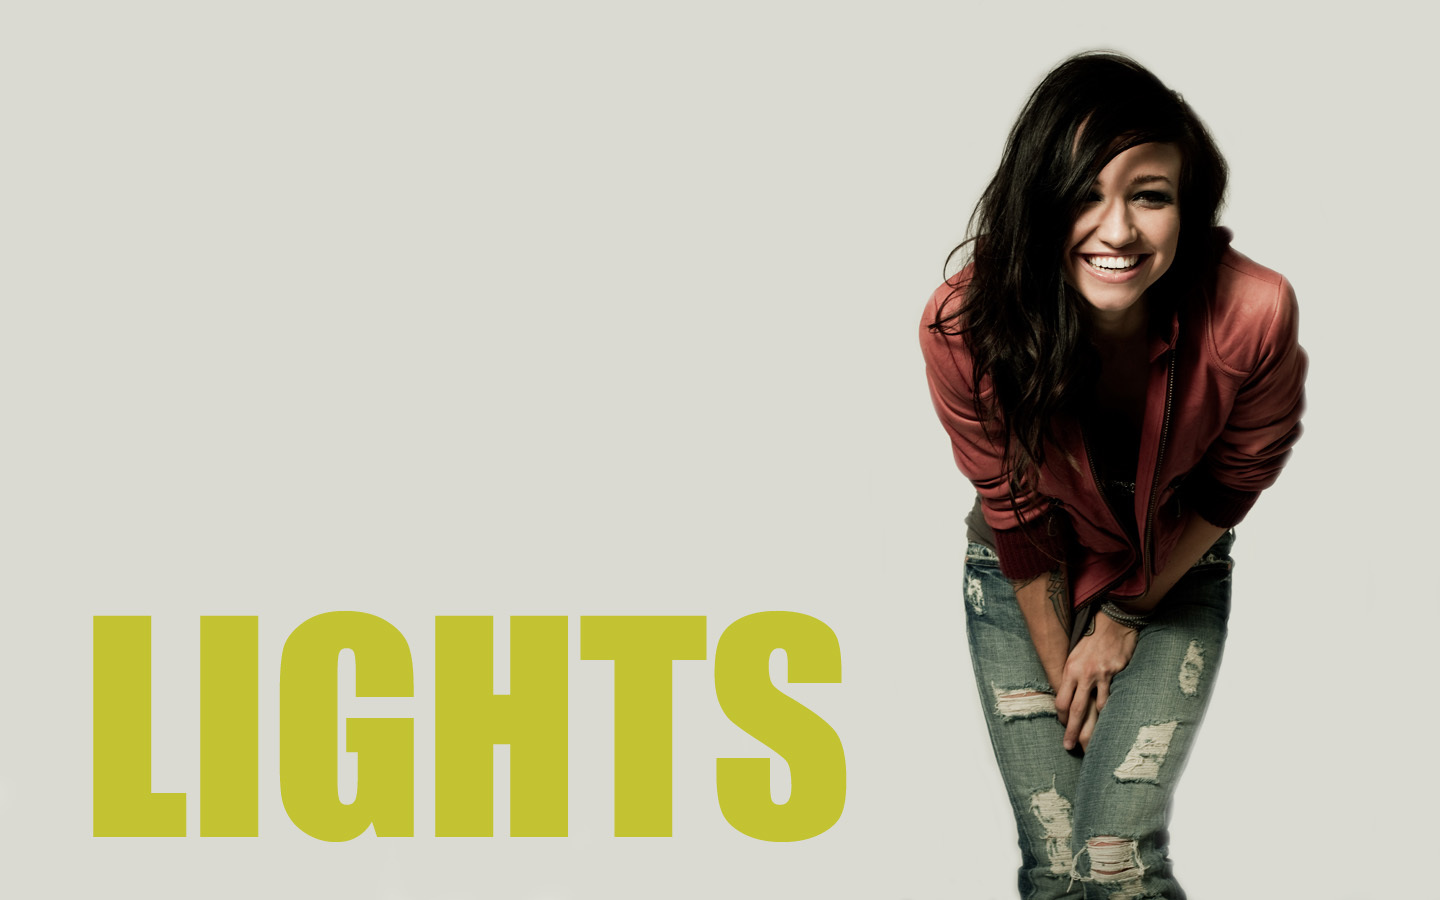 Lights Valerie Poxleitner HD Wallpaper